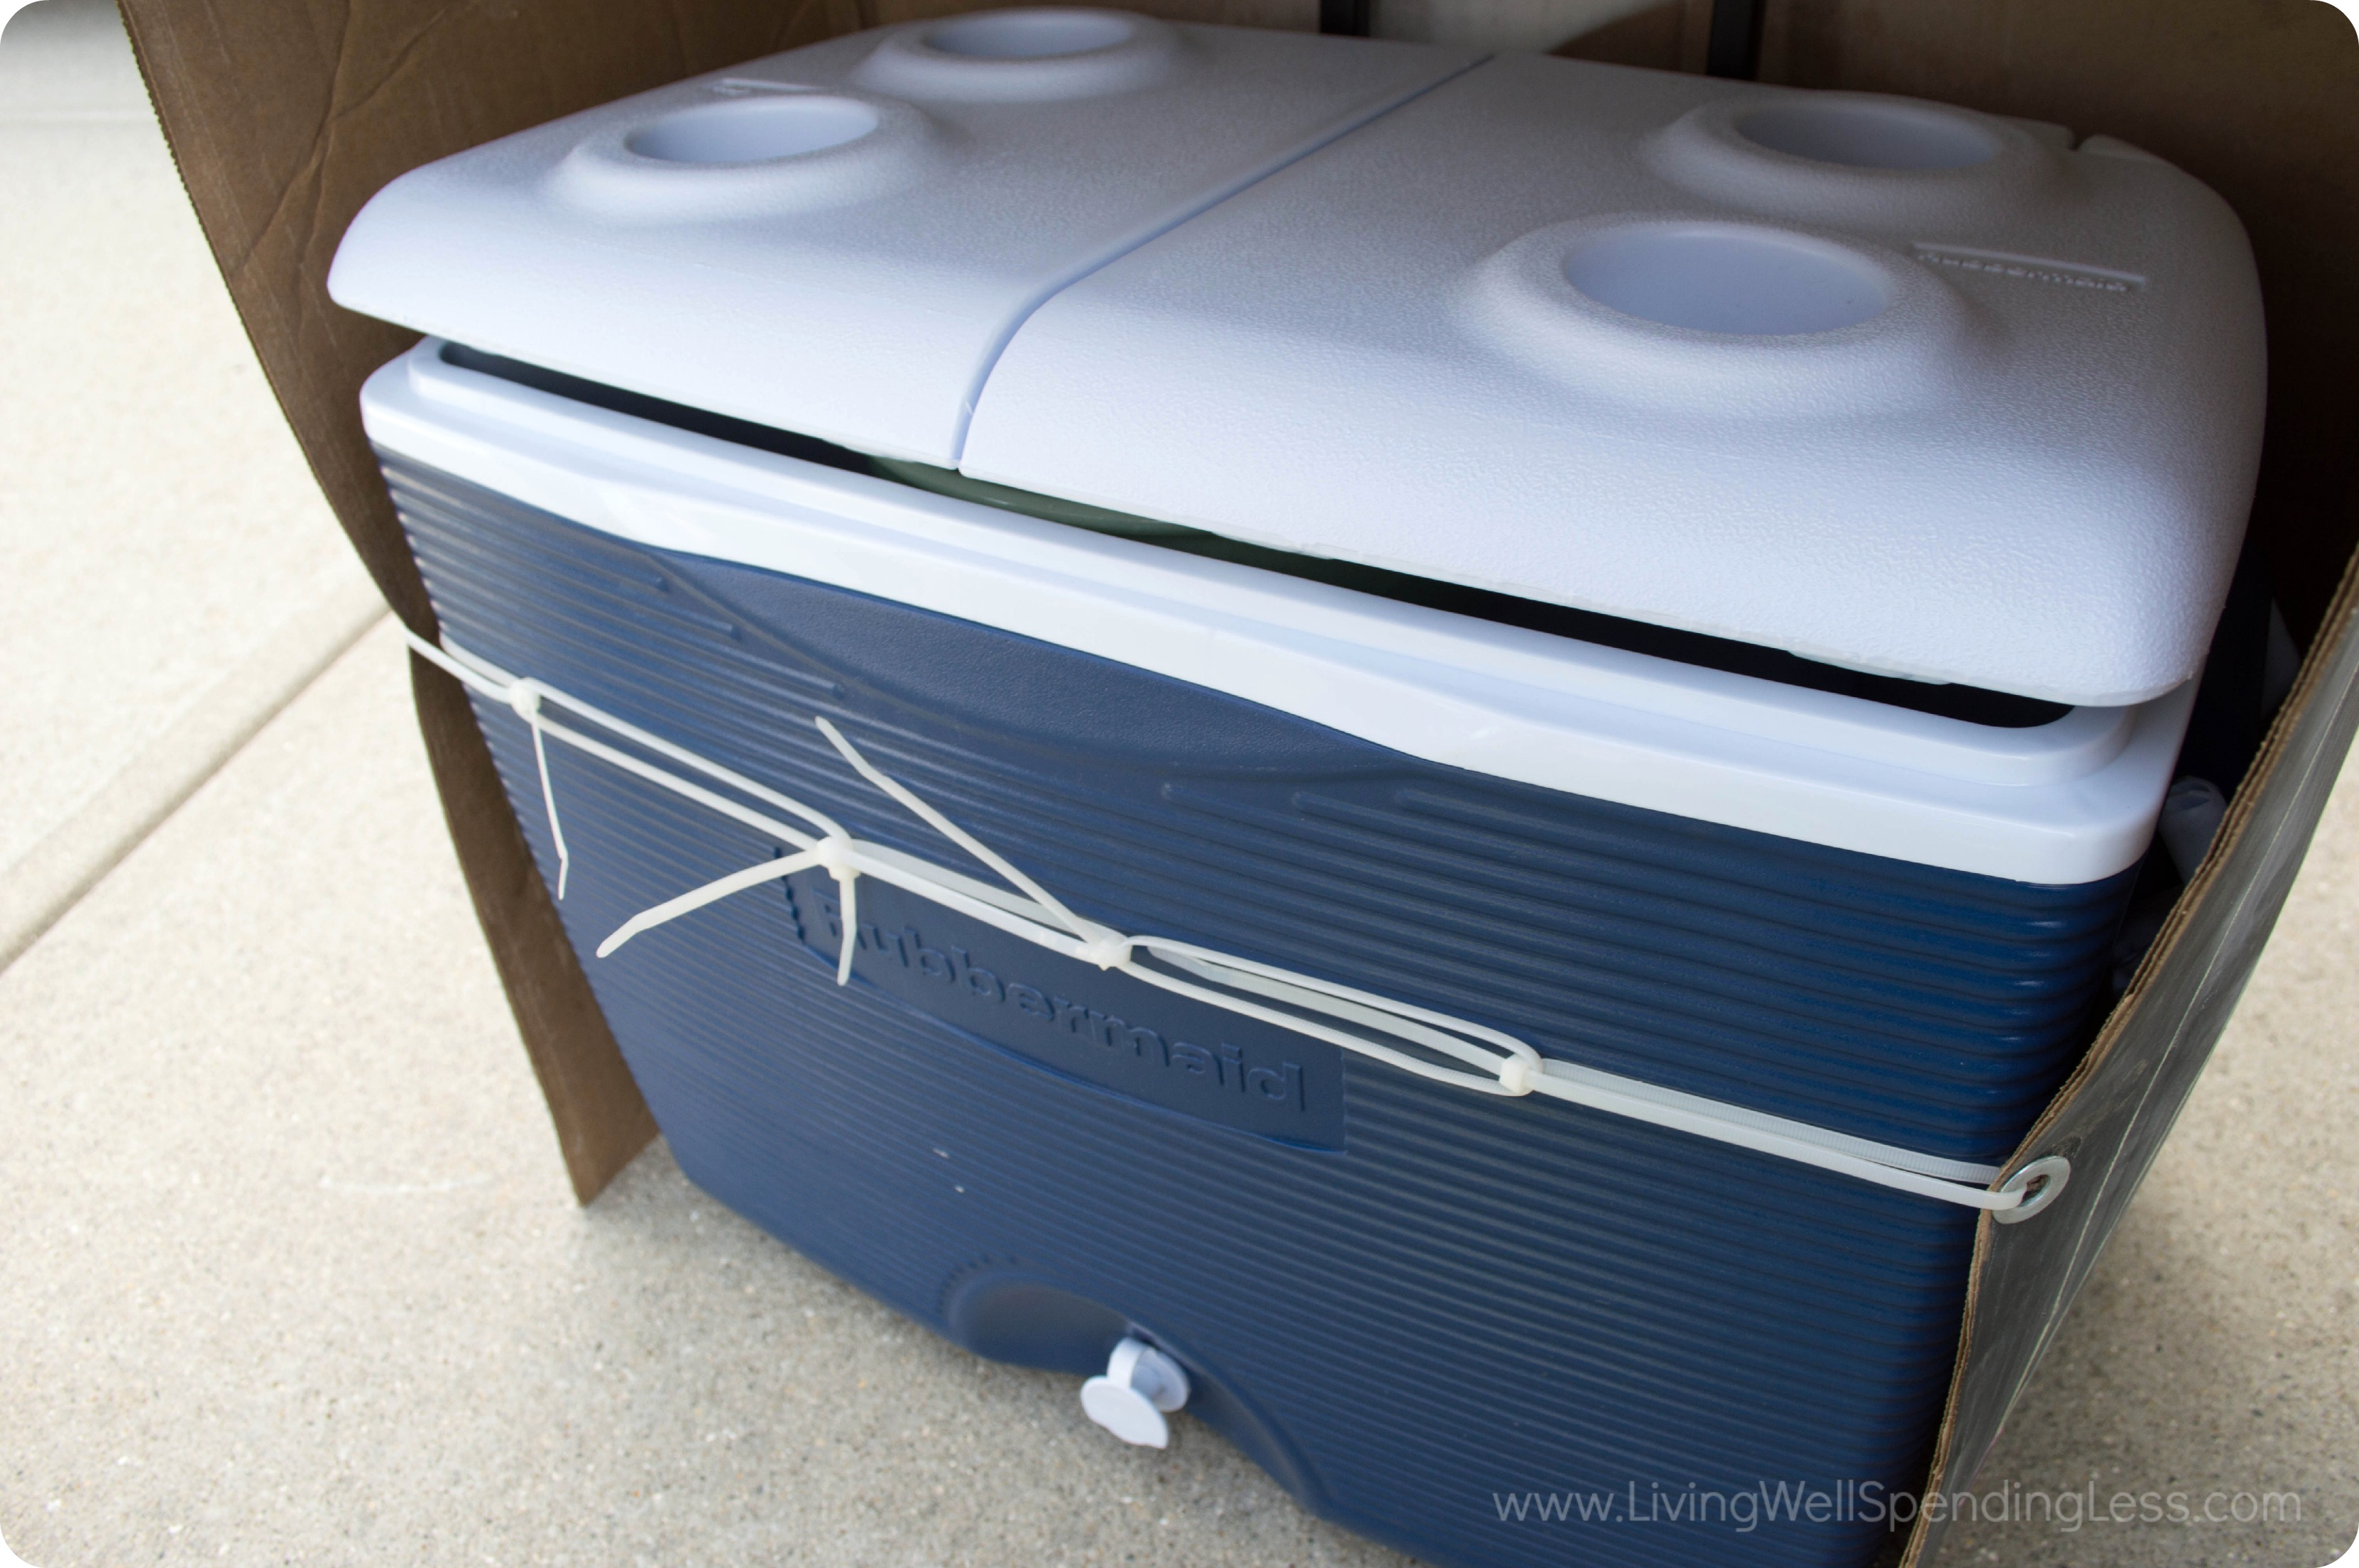 Attach the cover around the cooler with zip ties